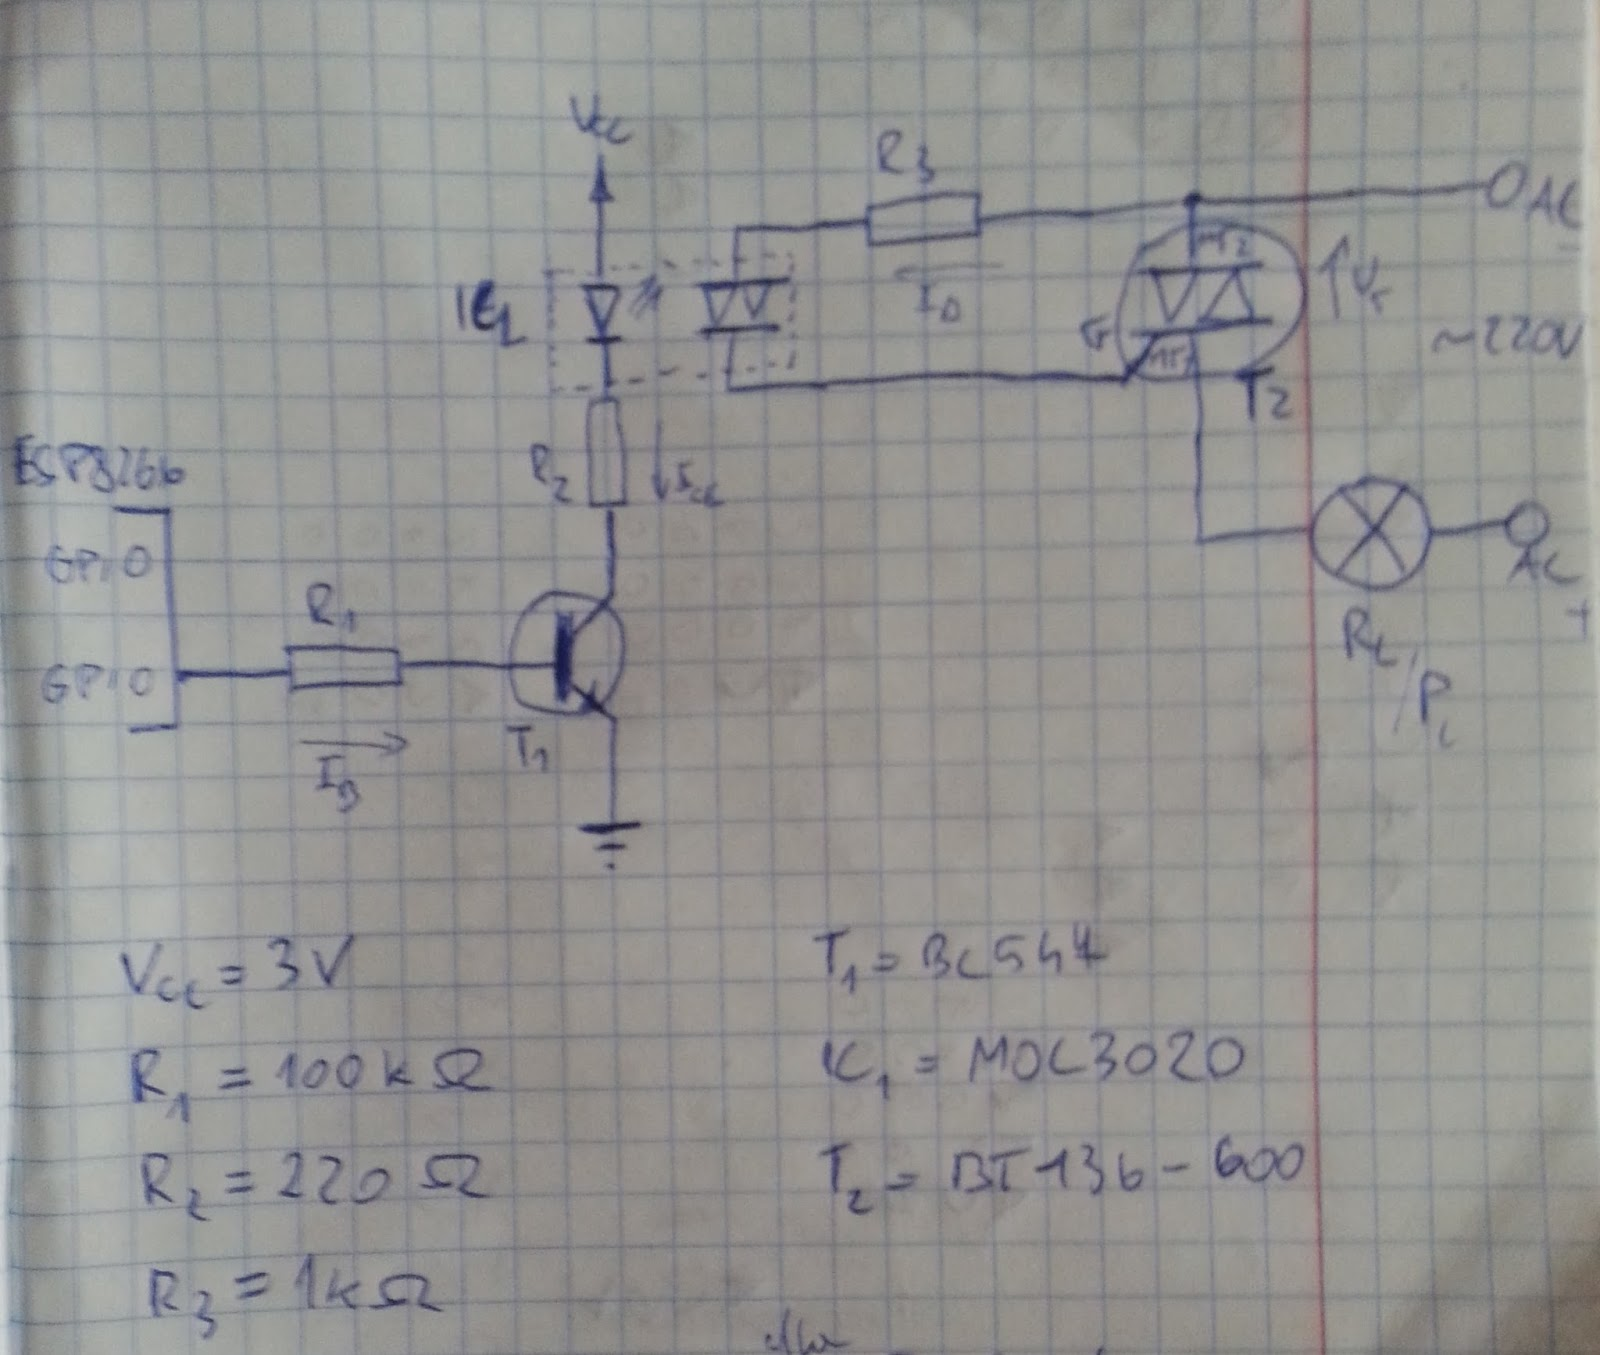 Using Optoisolator And Triac With Mcu To Switch Light On Off Need